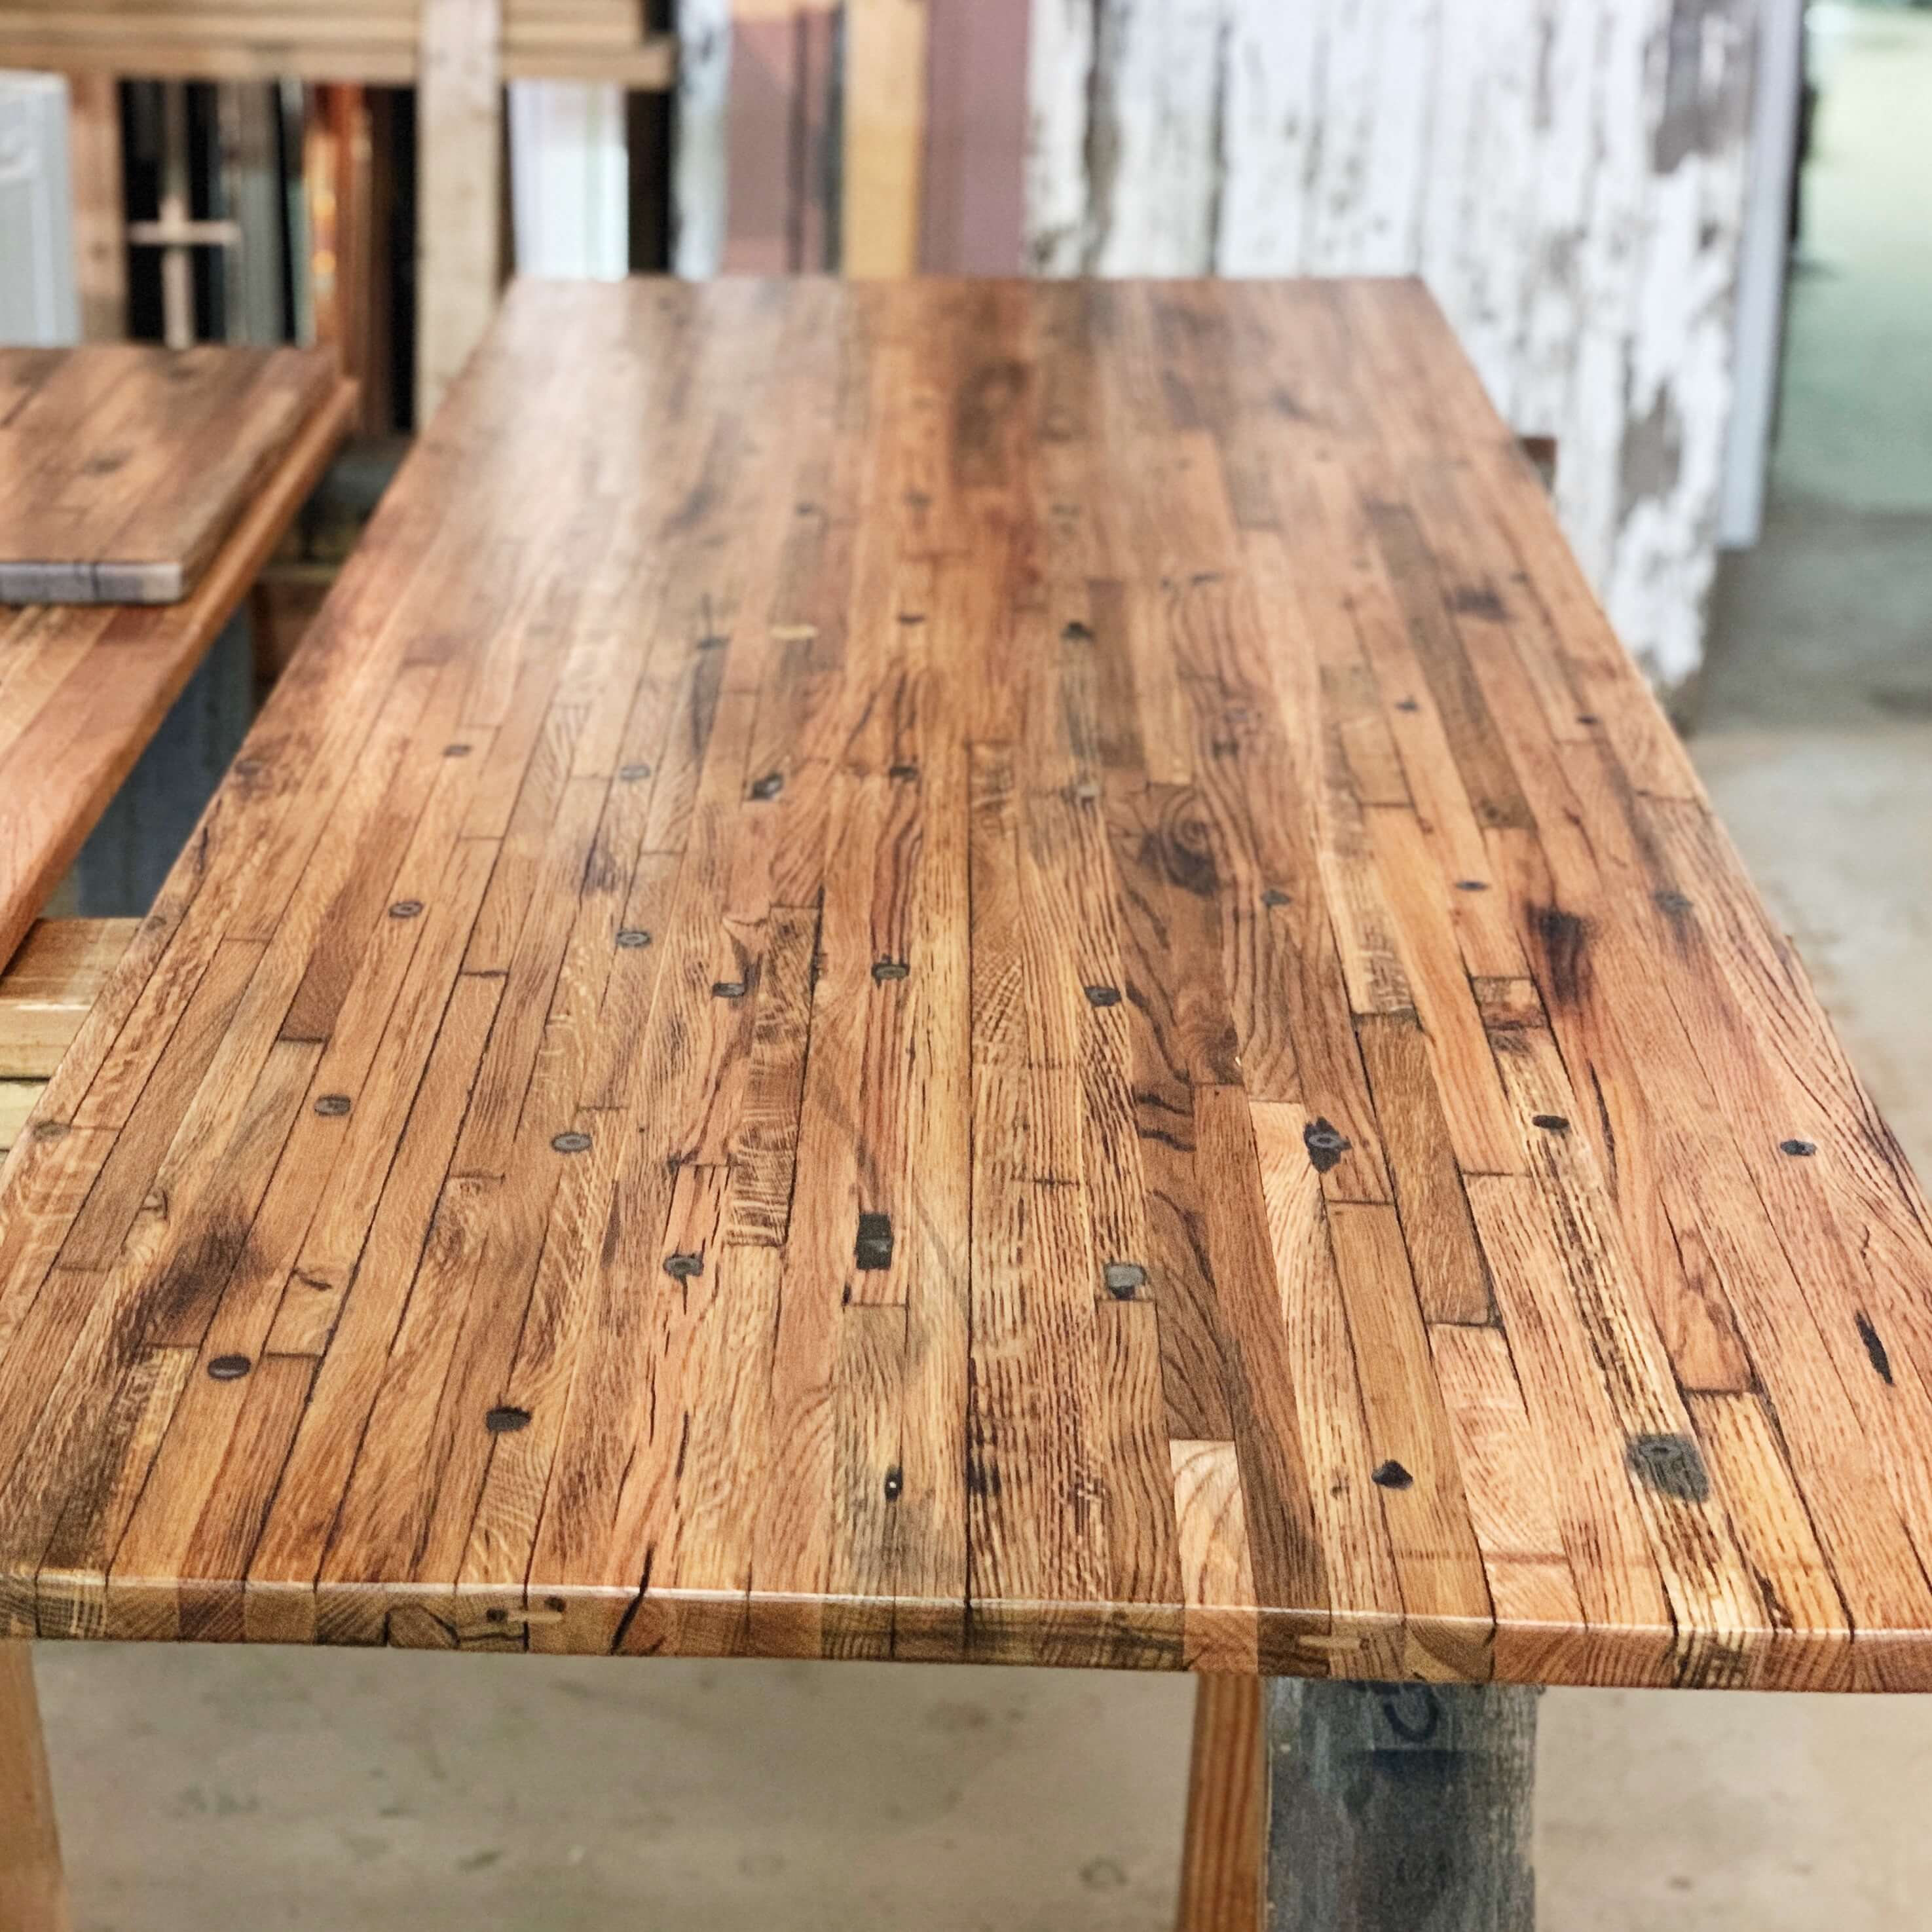 oak butcher block table with dark stain